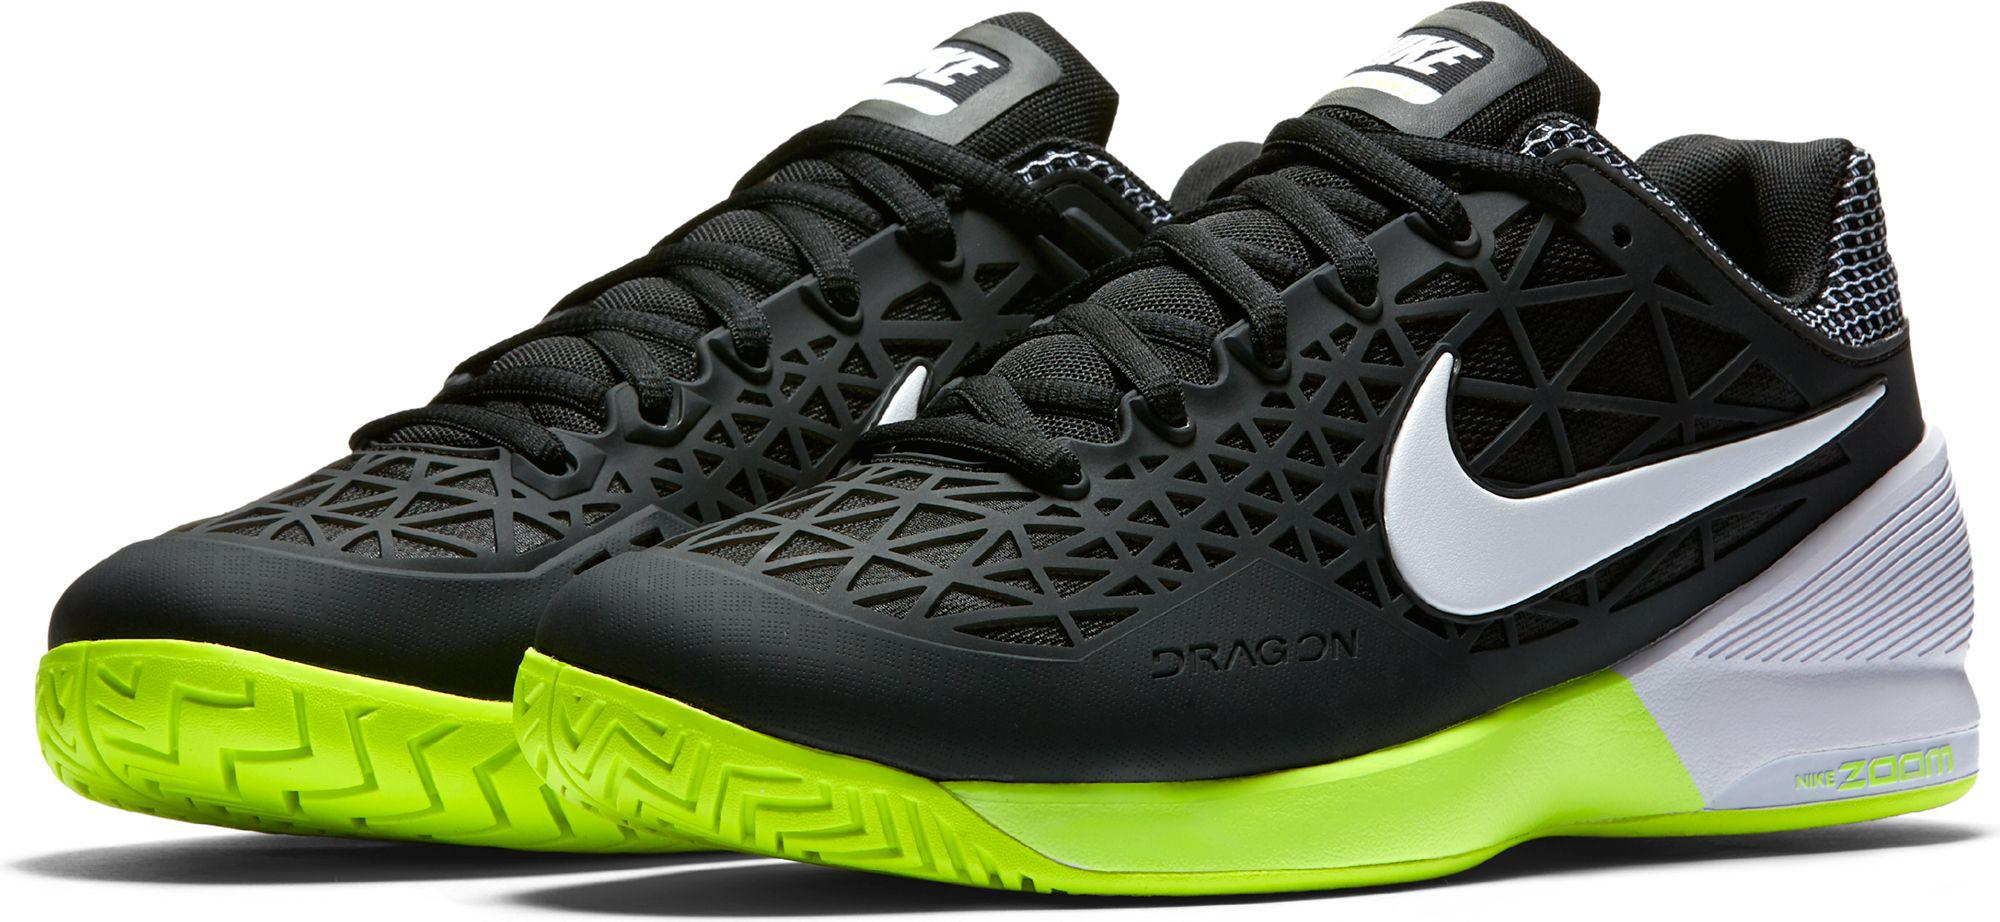 e2a96cb879ed94 Lyst - Nike Zoom Cage 2 Tennis Shoes in Black for Men